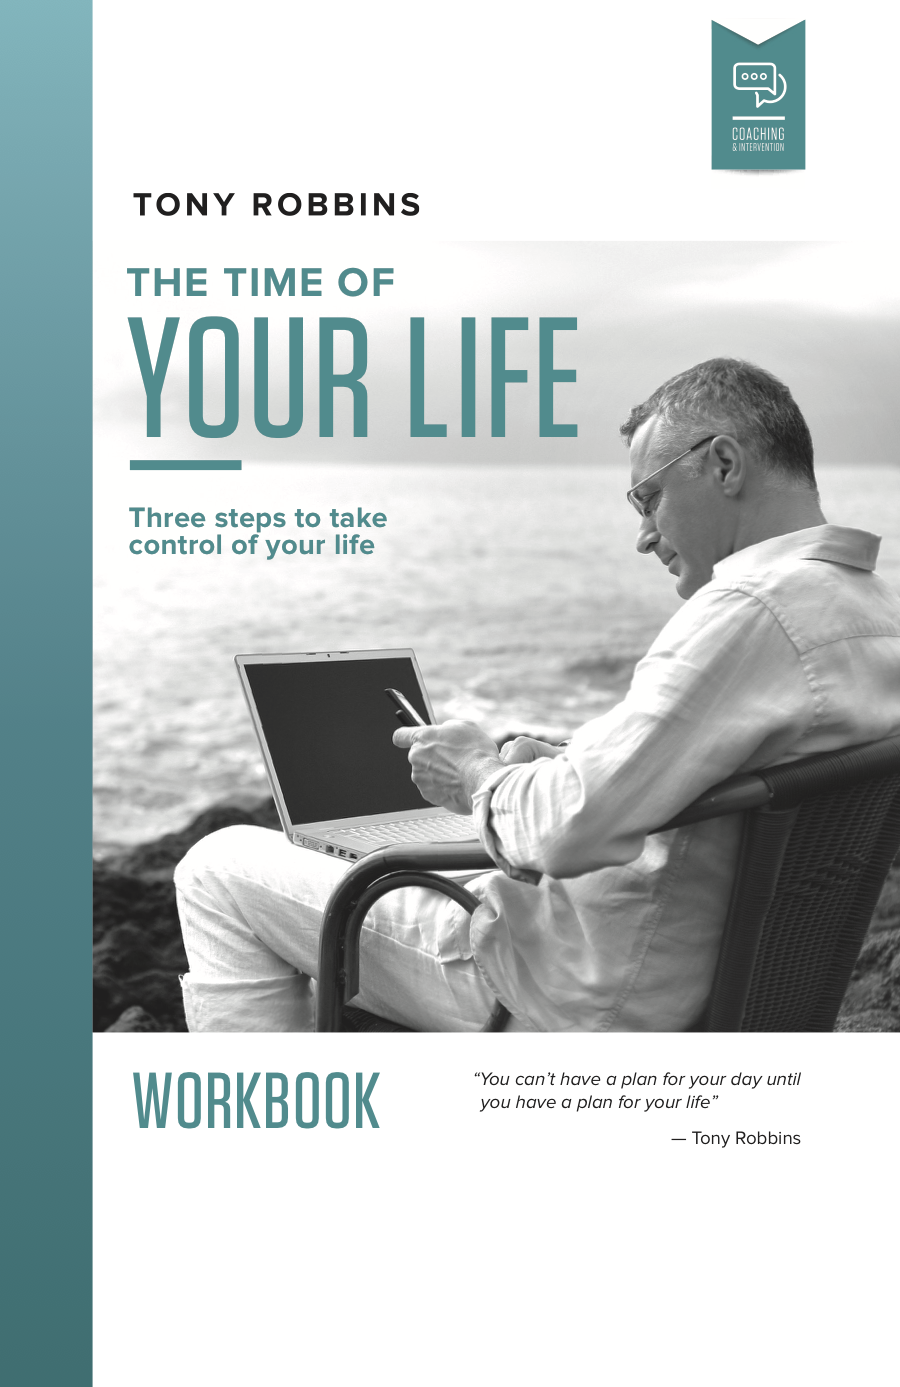 The Time of Your Life – Tony Robbins